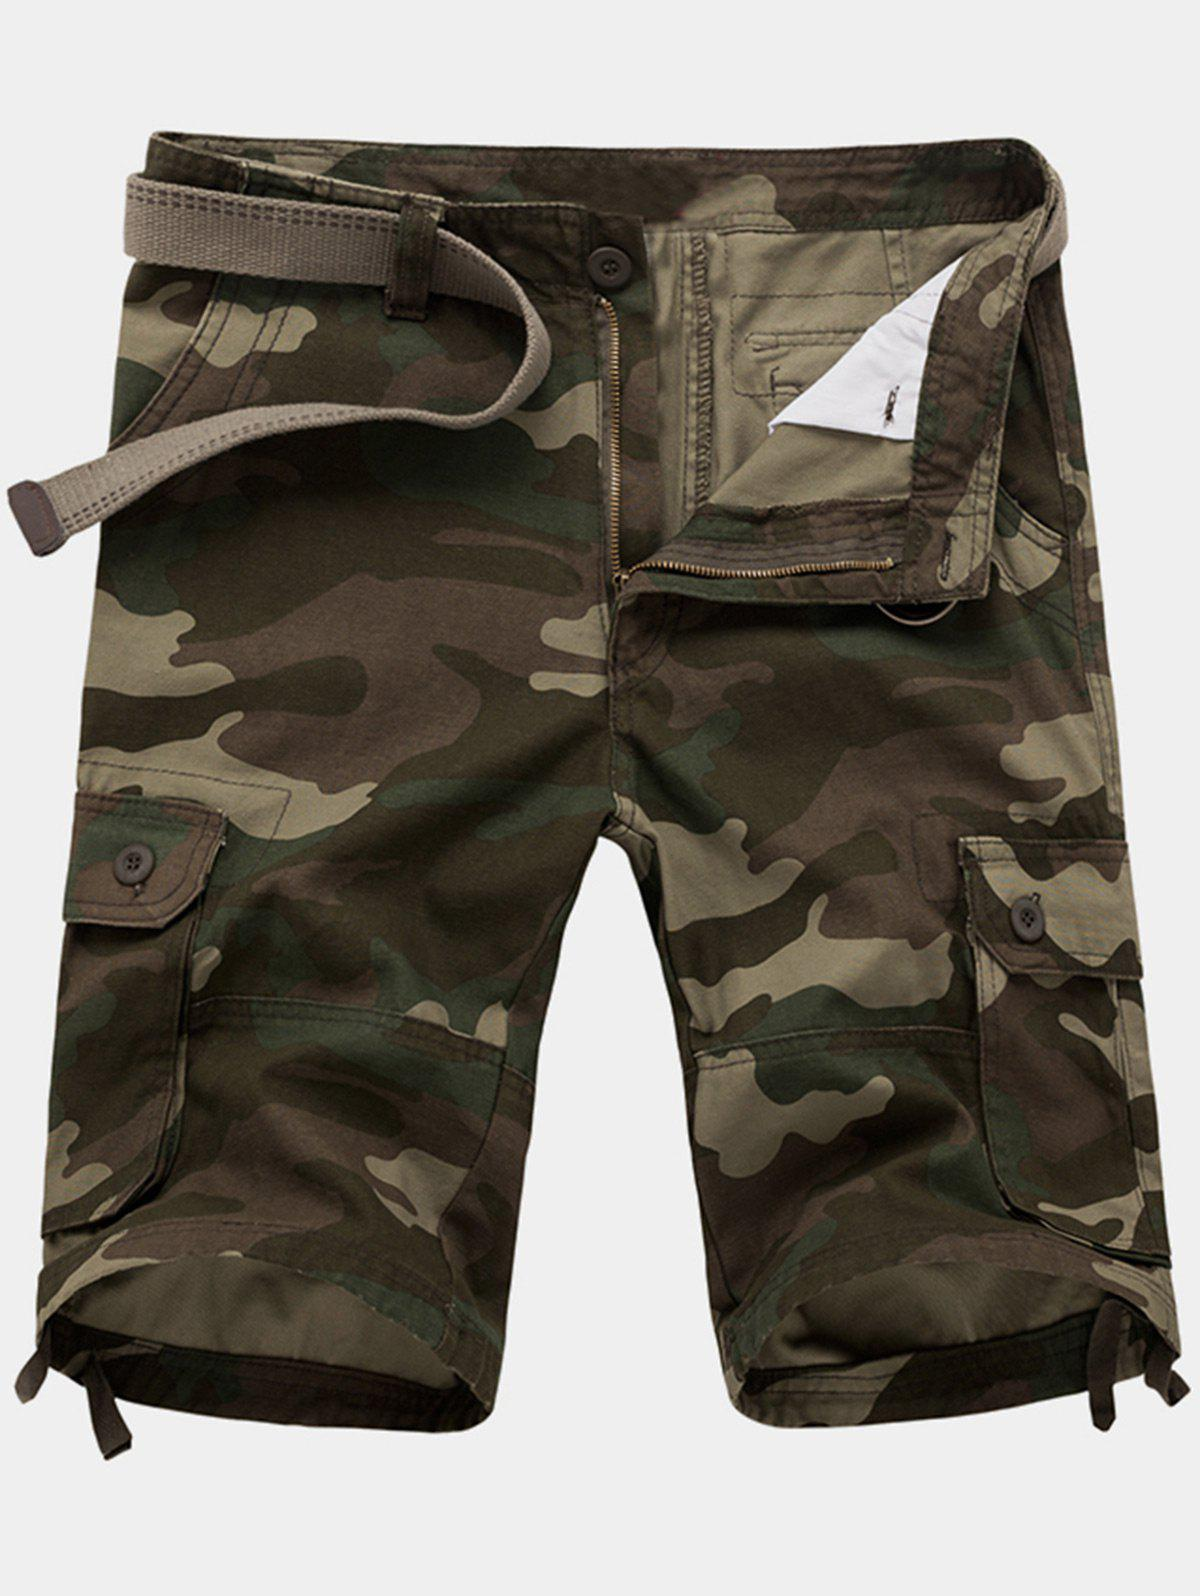 Zipper Fly Poches Camouflage Cargo Shorts - Vert Armée 32